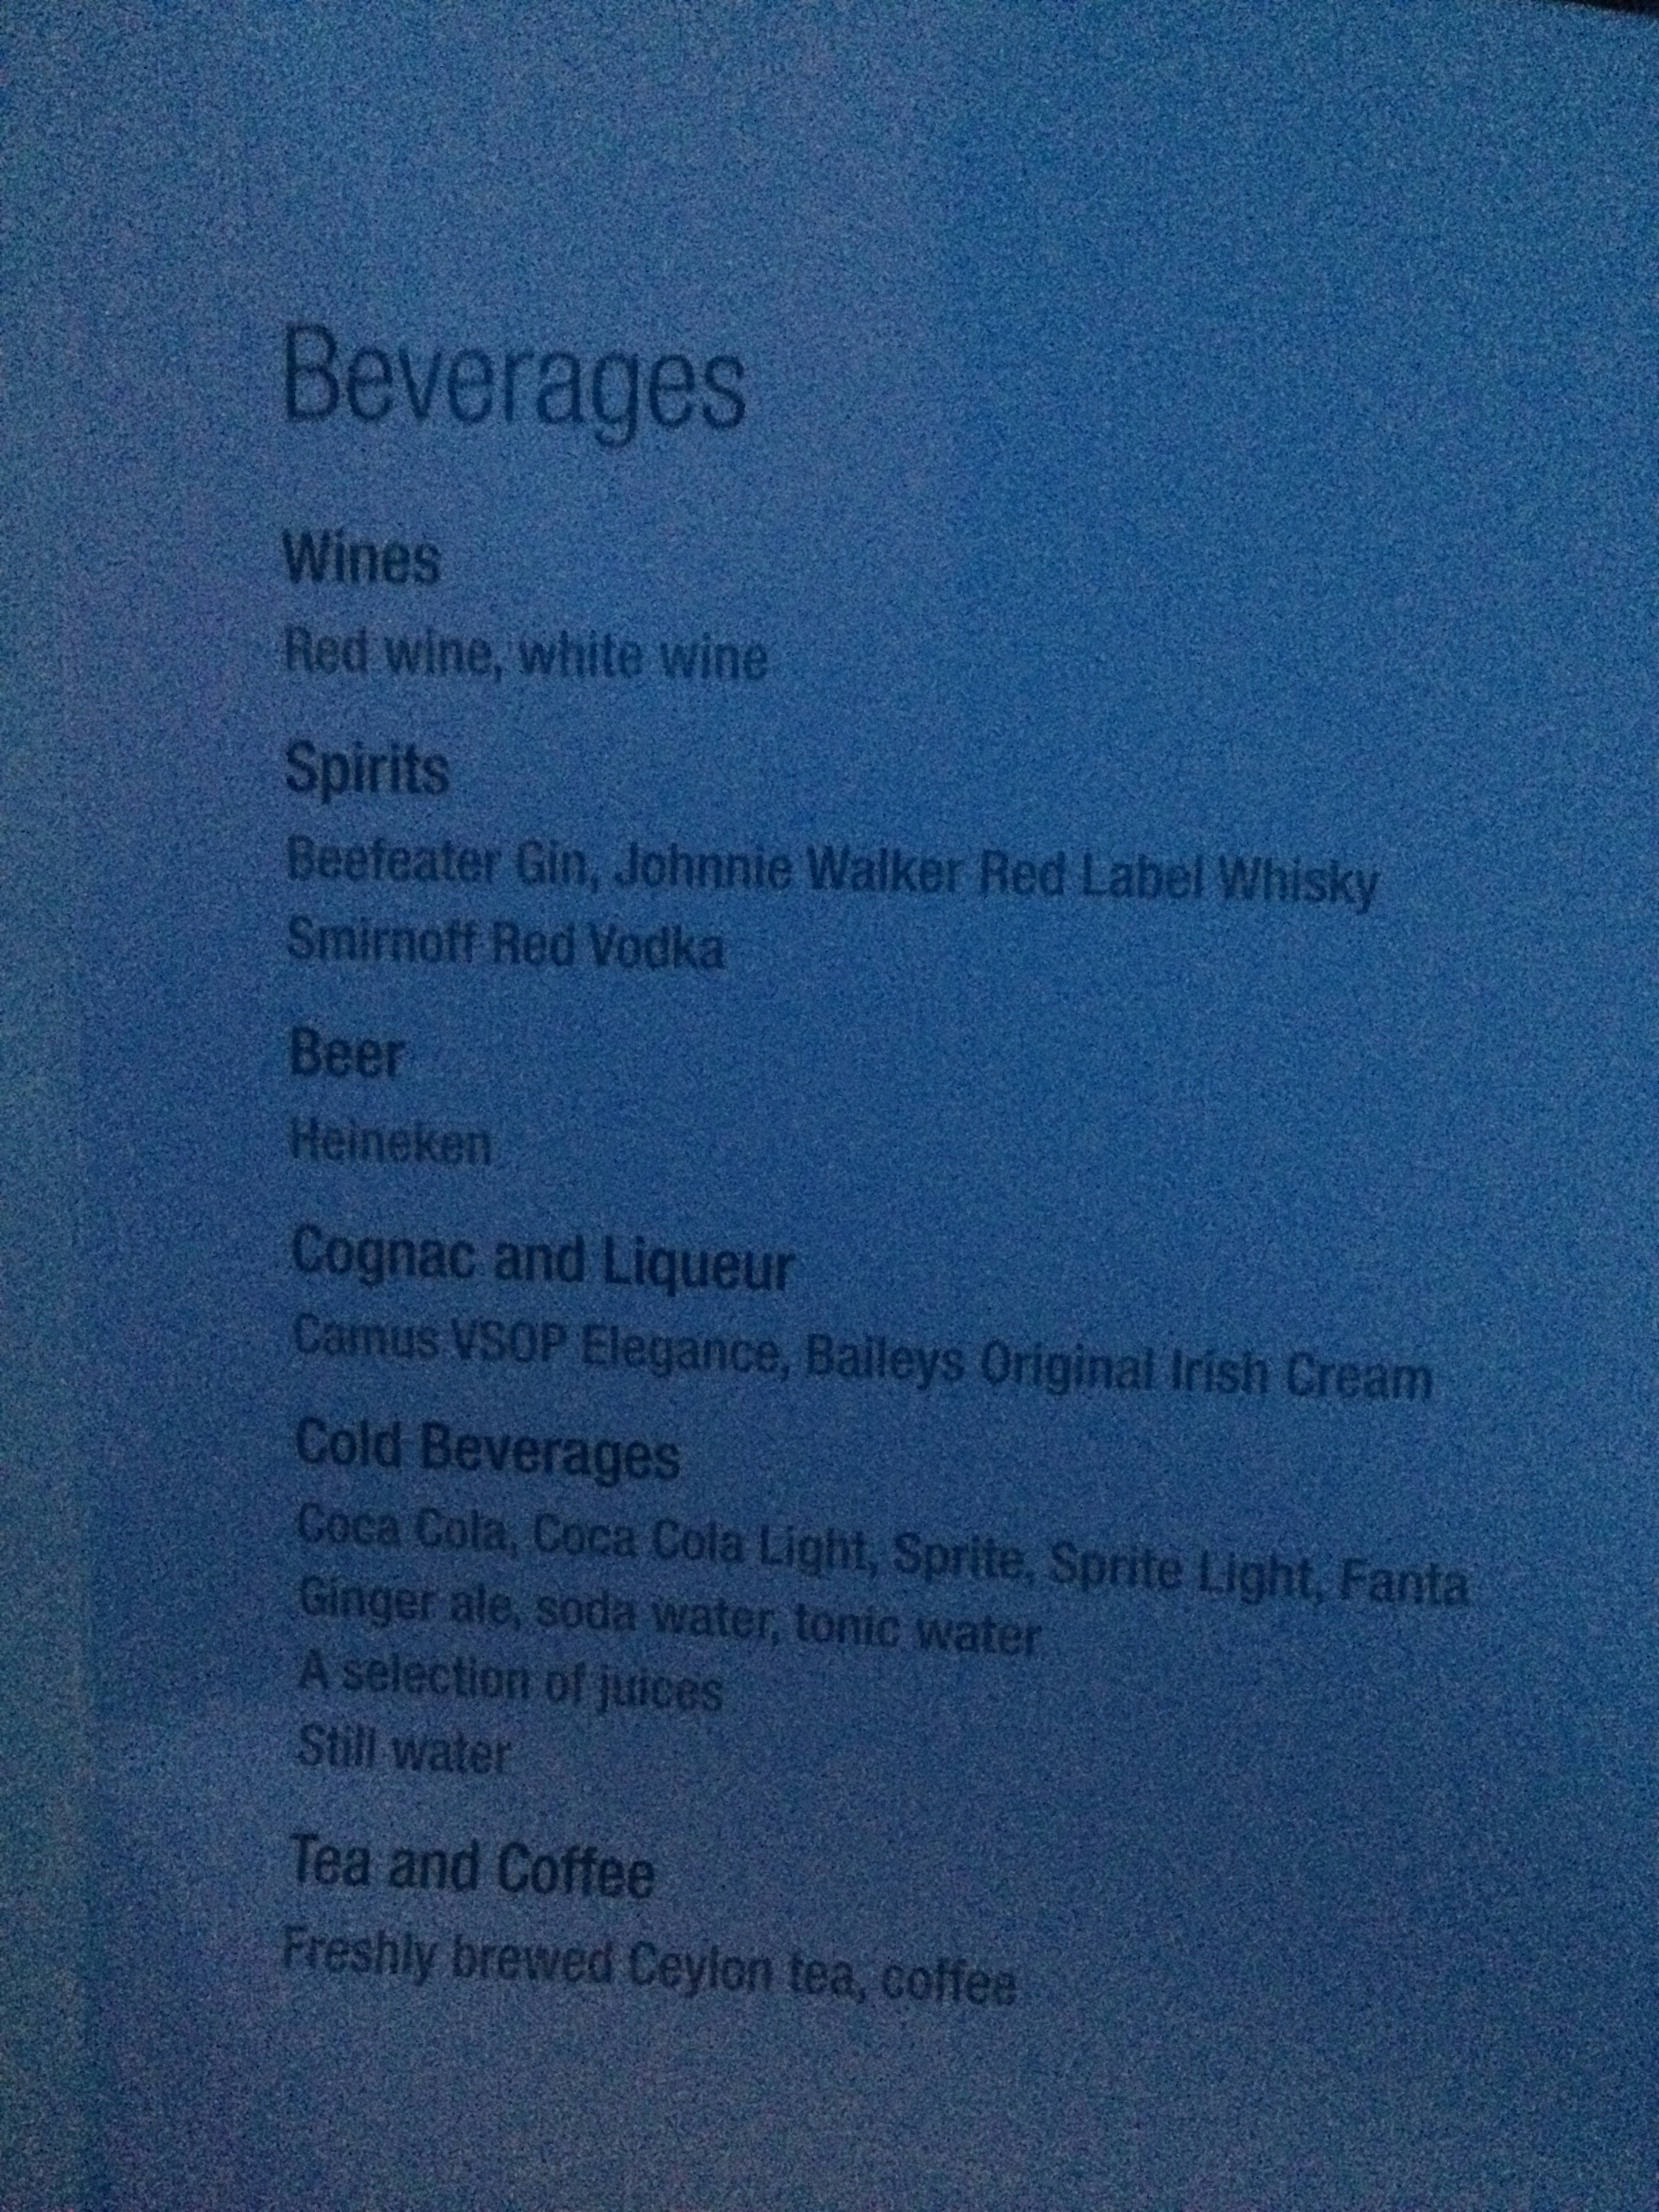 qatar airways drink menu.JPG